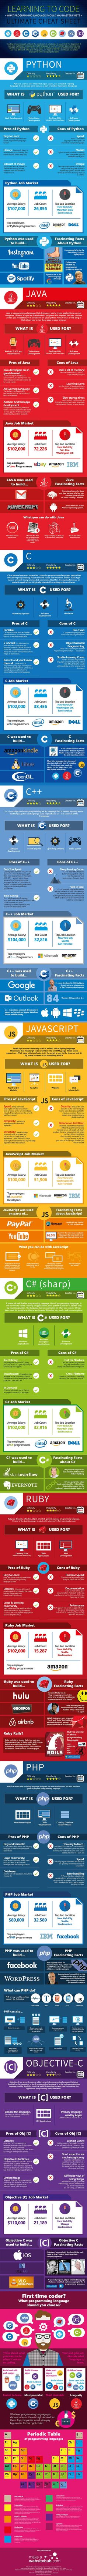 Which programming language infographic